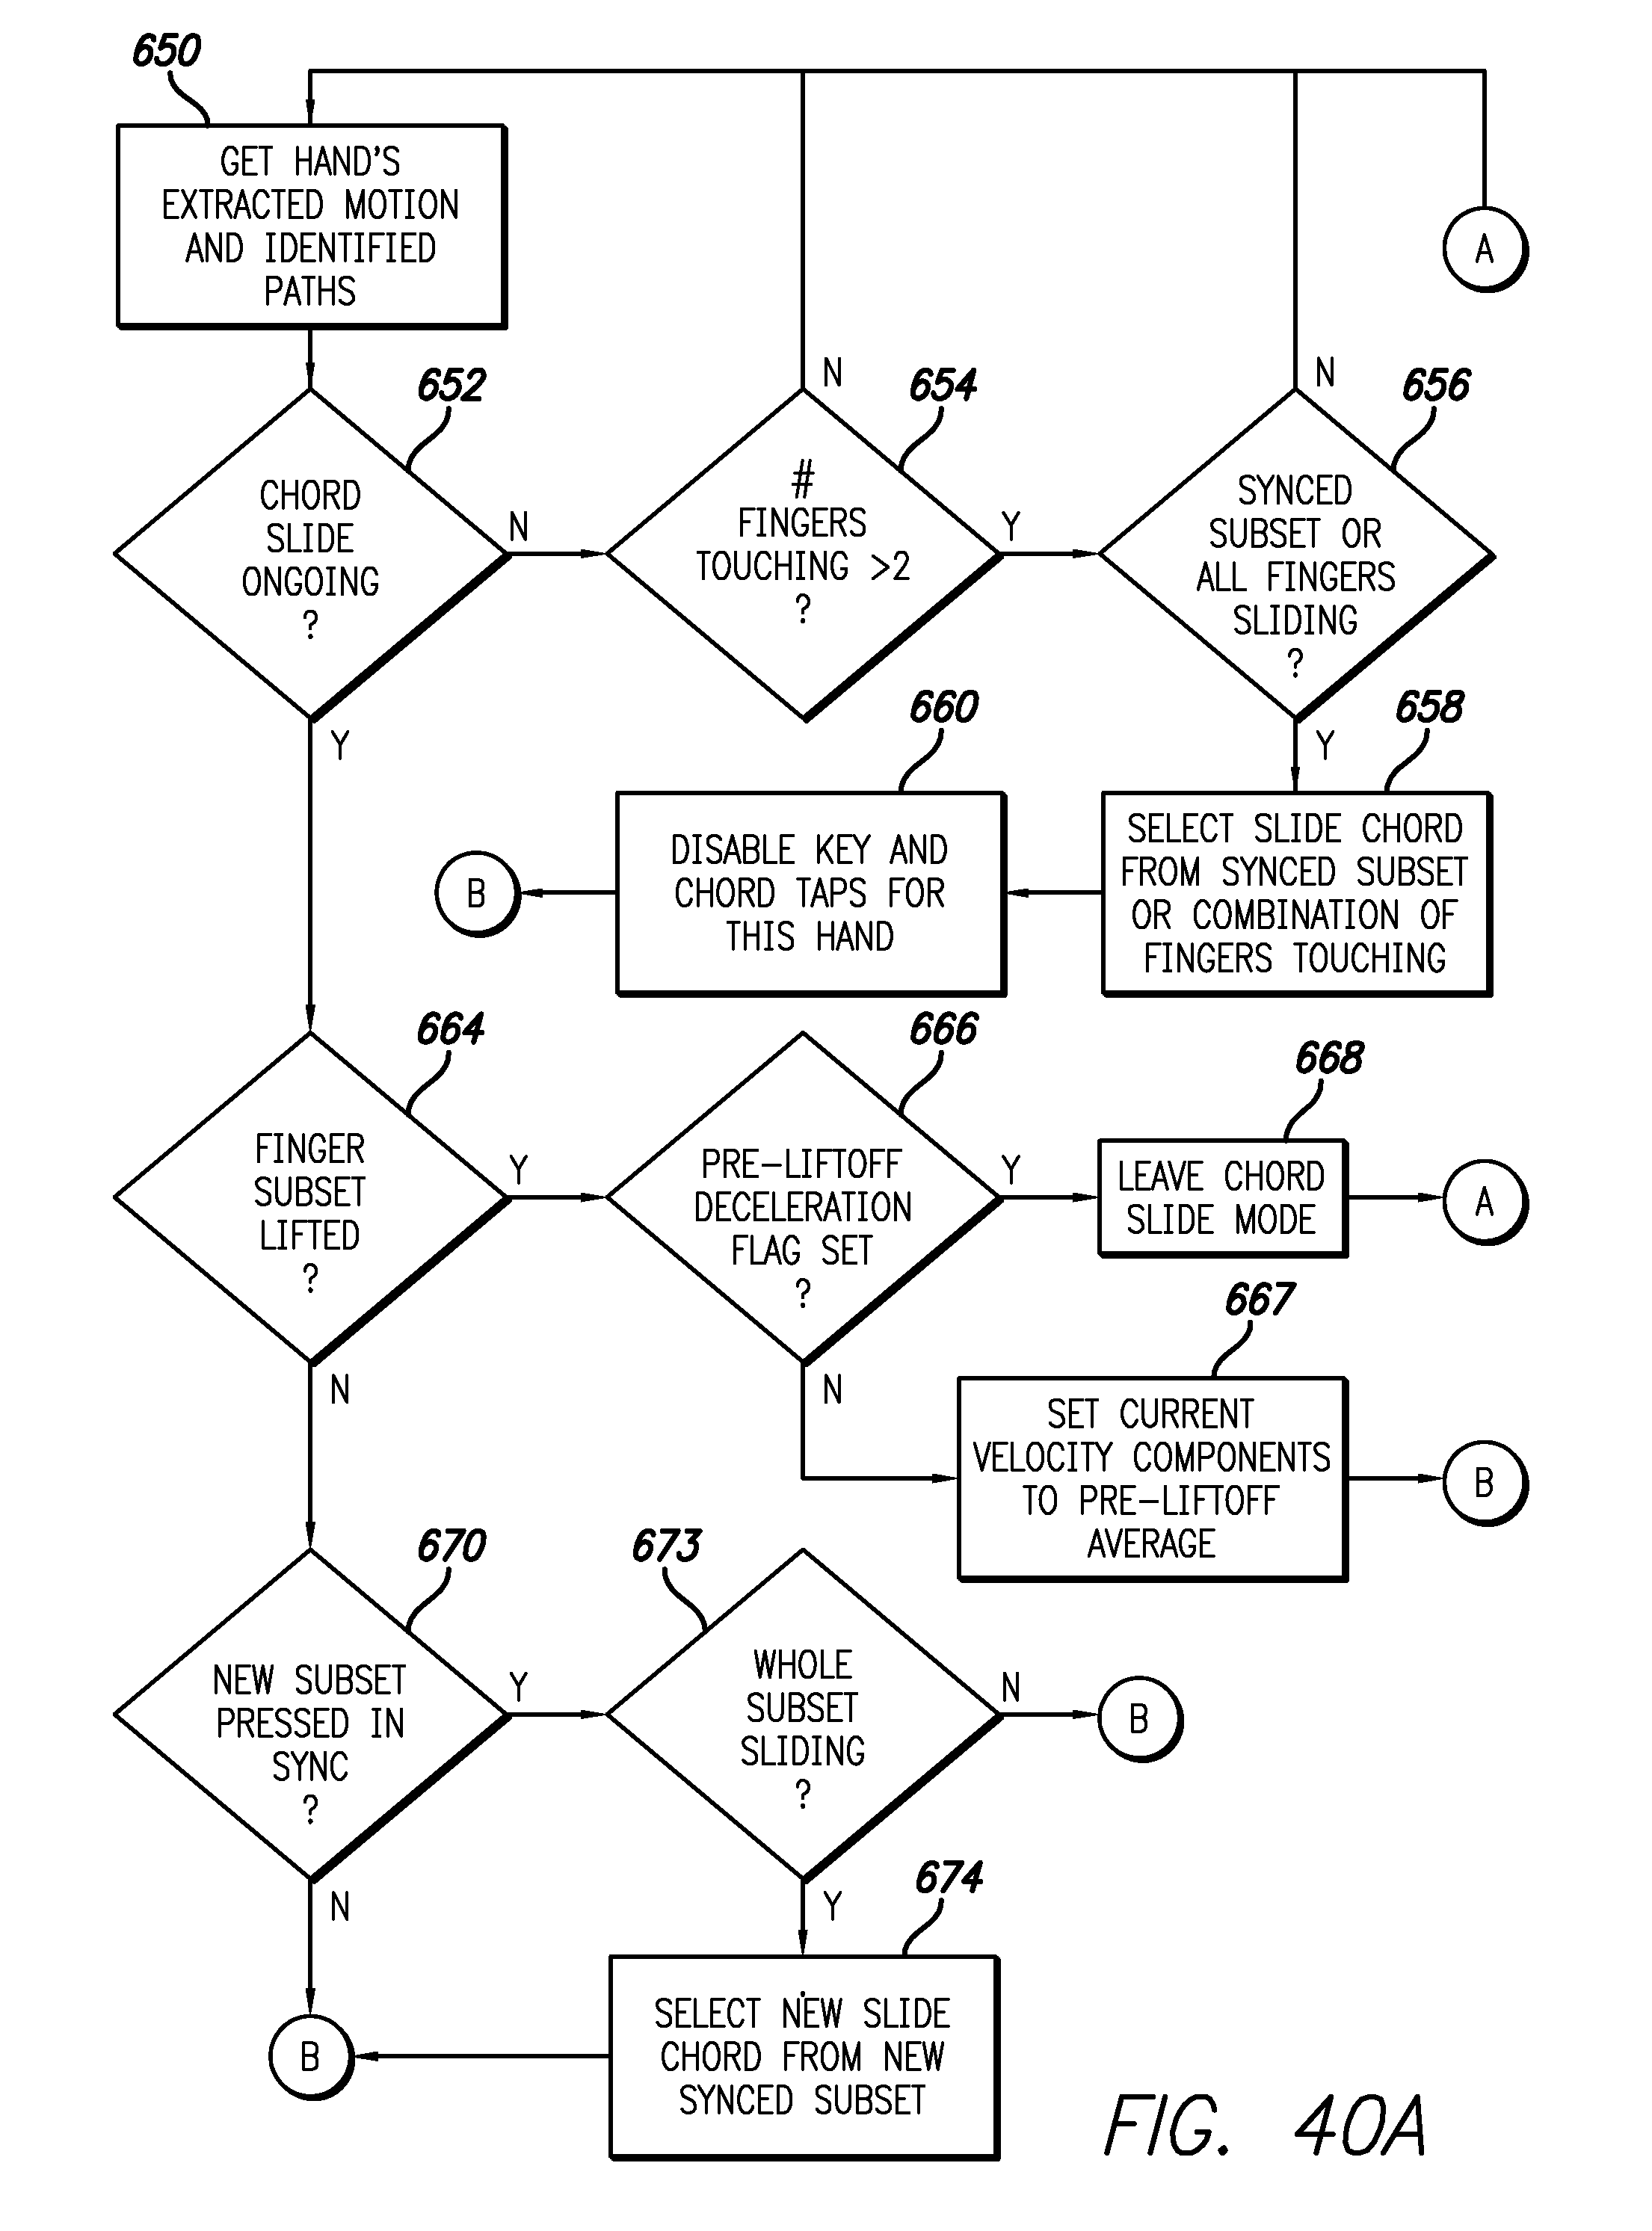 Array us8466883b2 identifying contacts on a touch surface patents rh patents